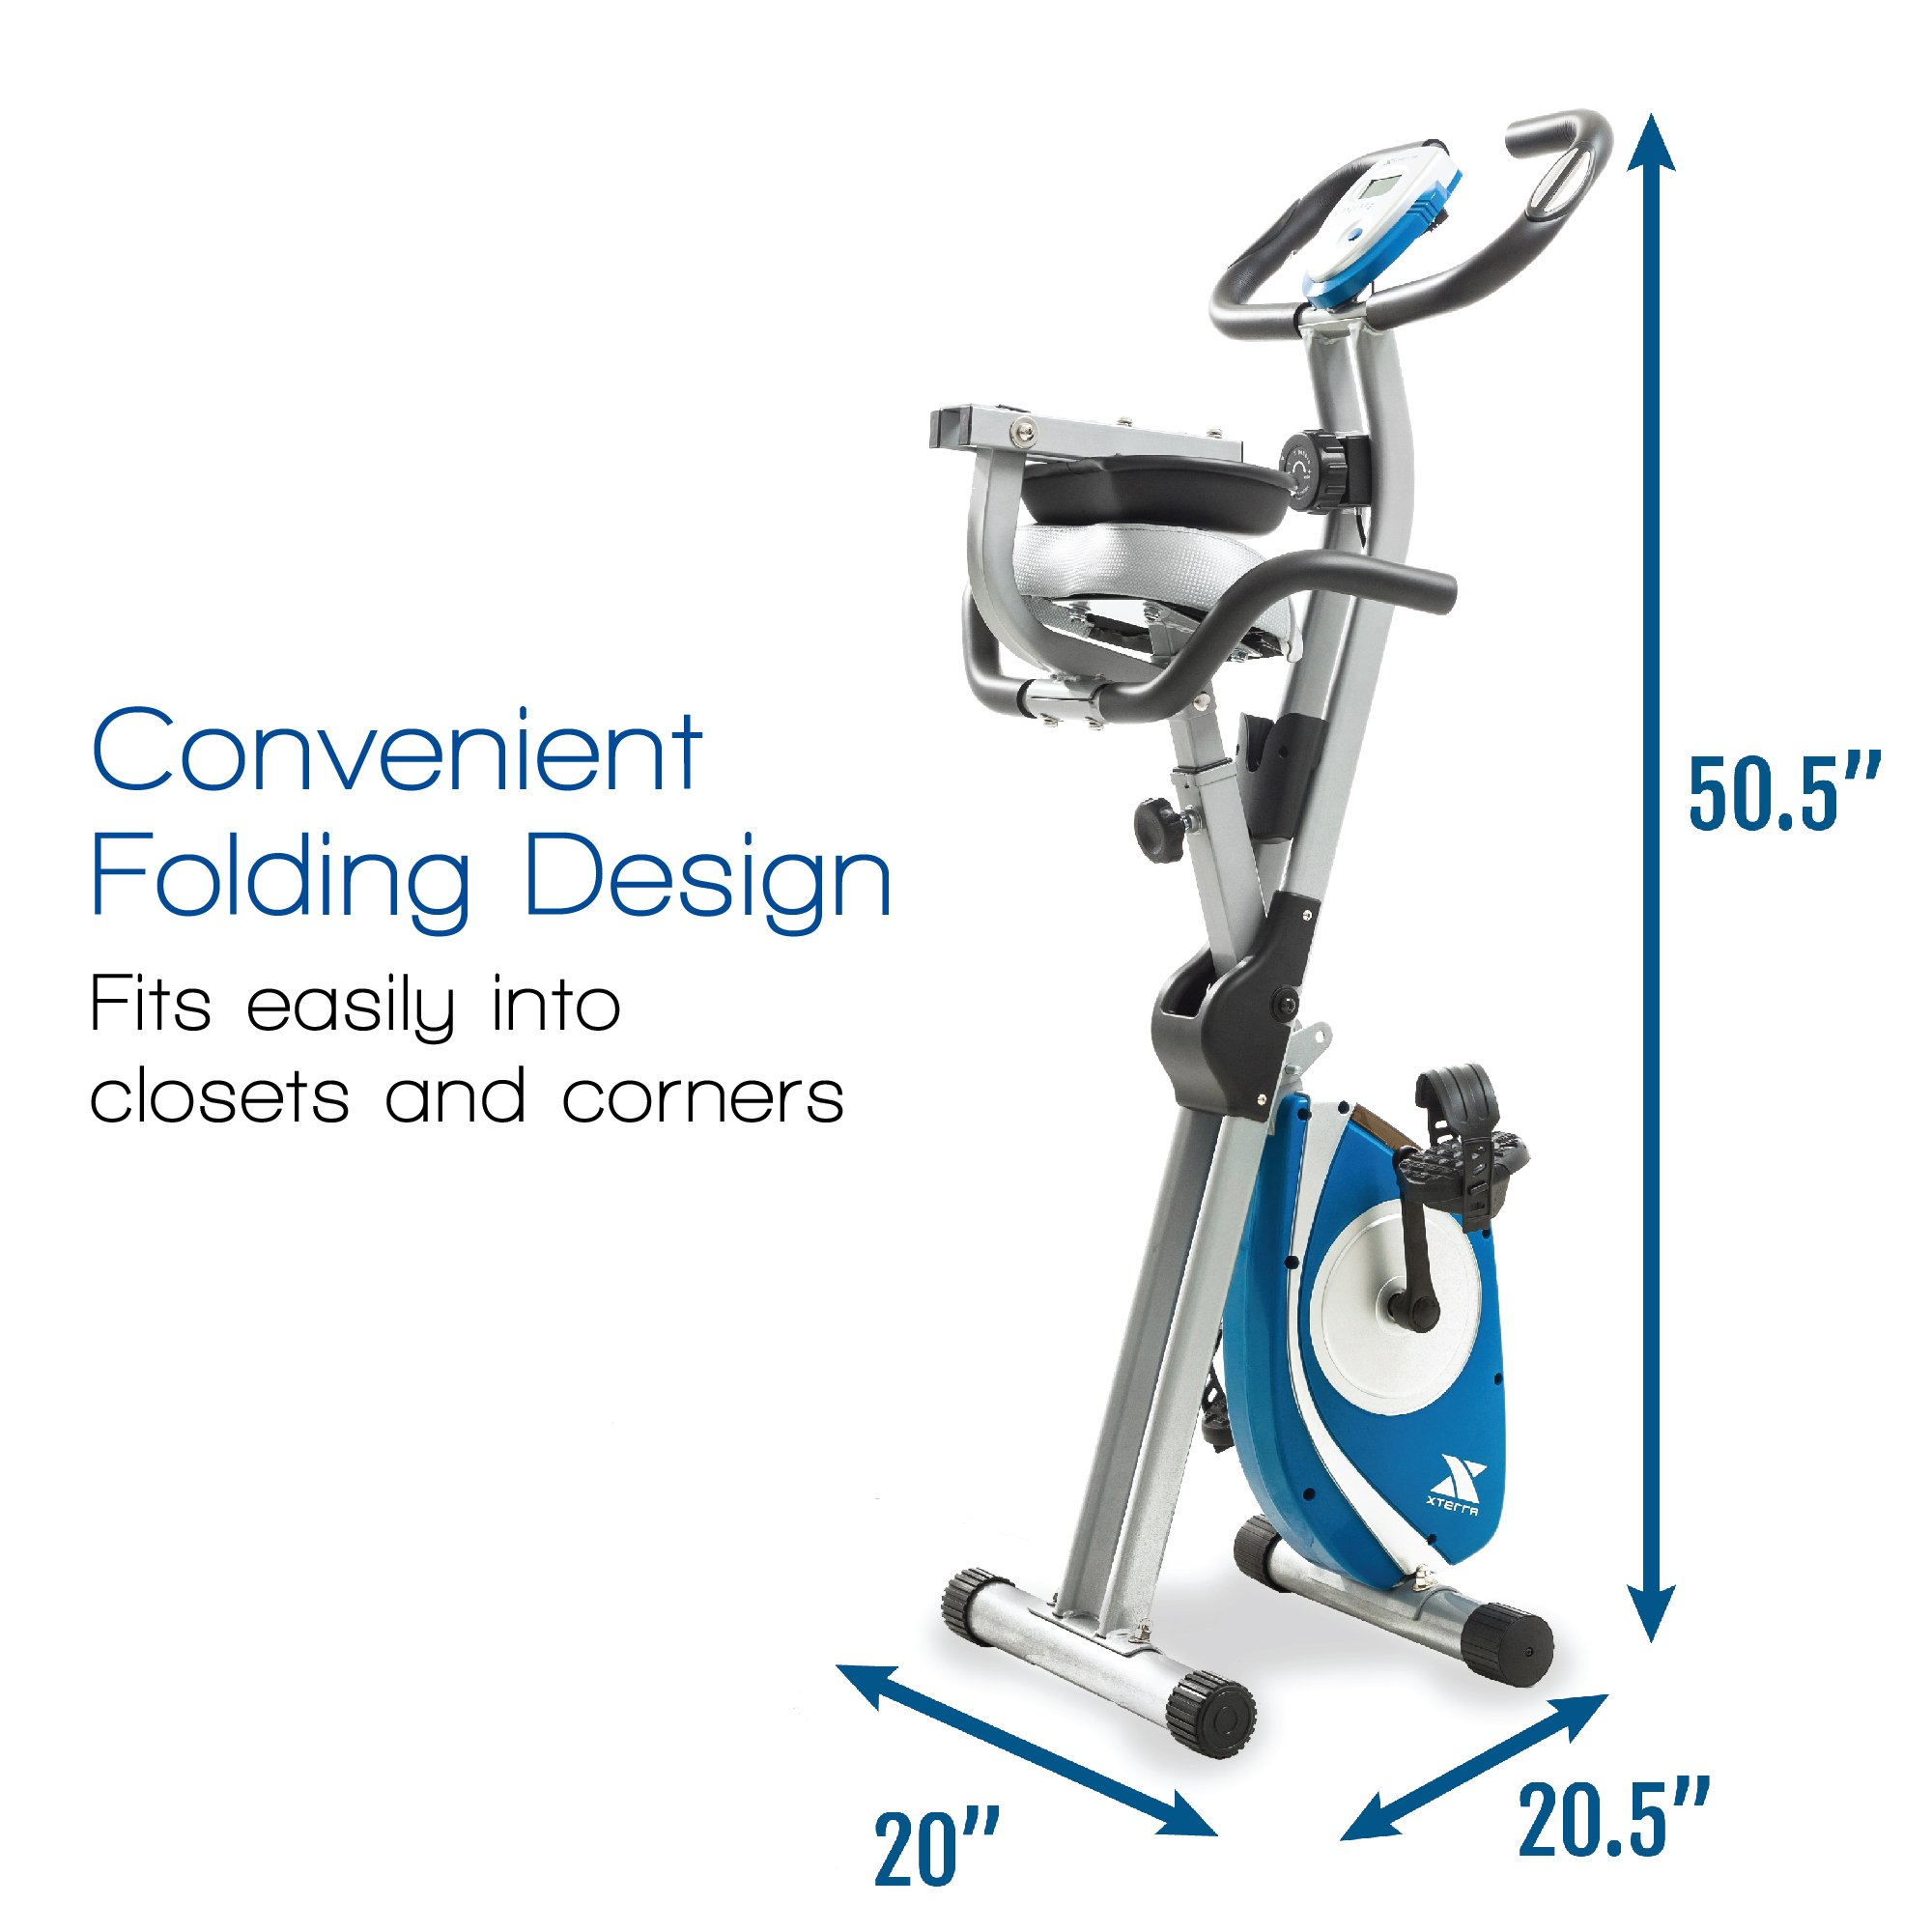 XTERRA Fitness FB350 Folding Exercise Bike, Silver by XTERRA Fitness (Image #3)